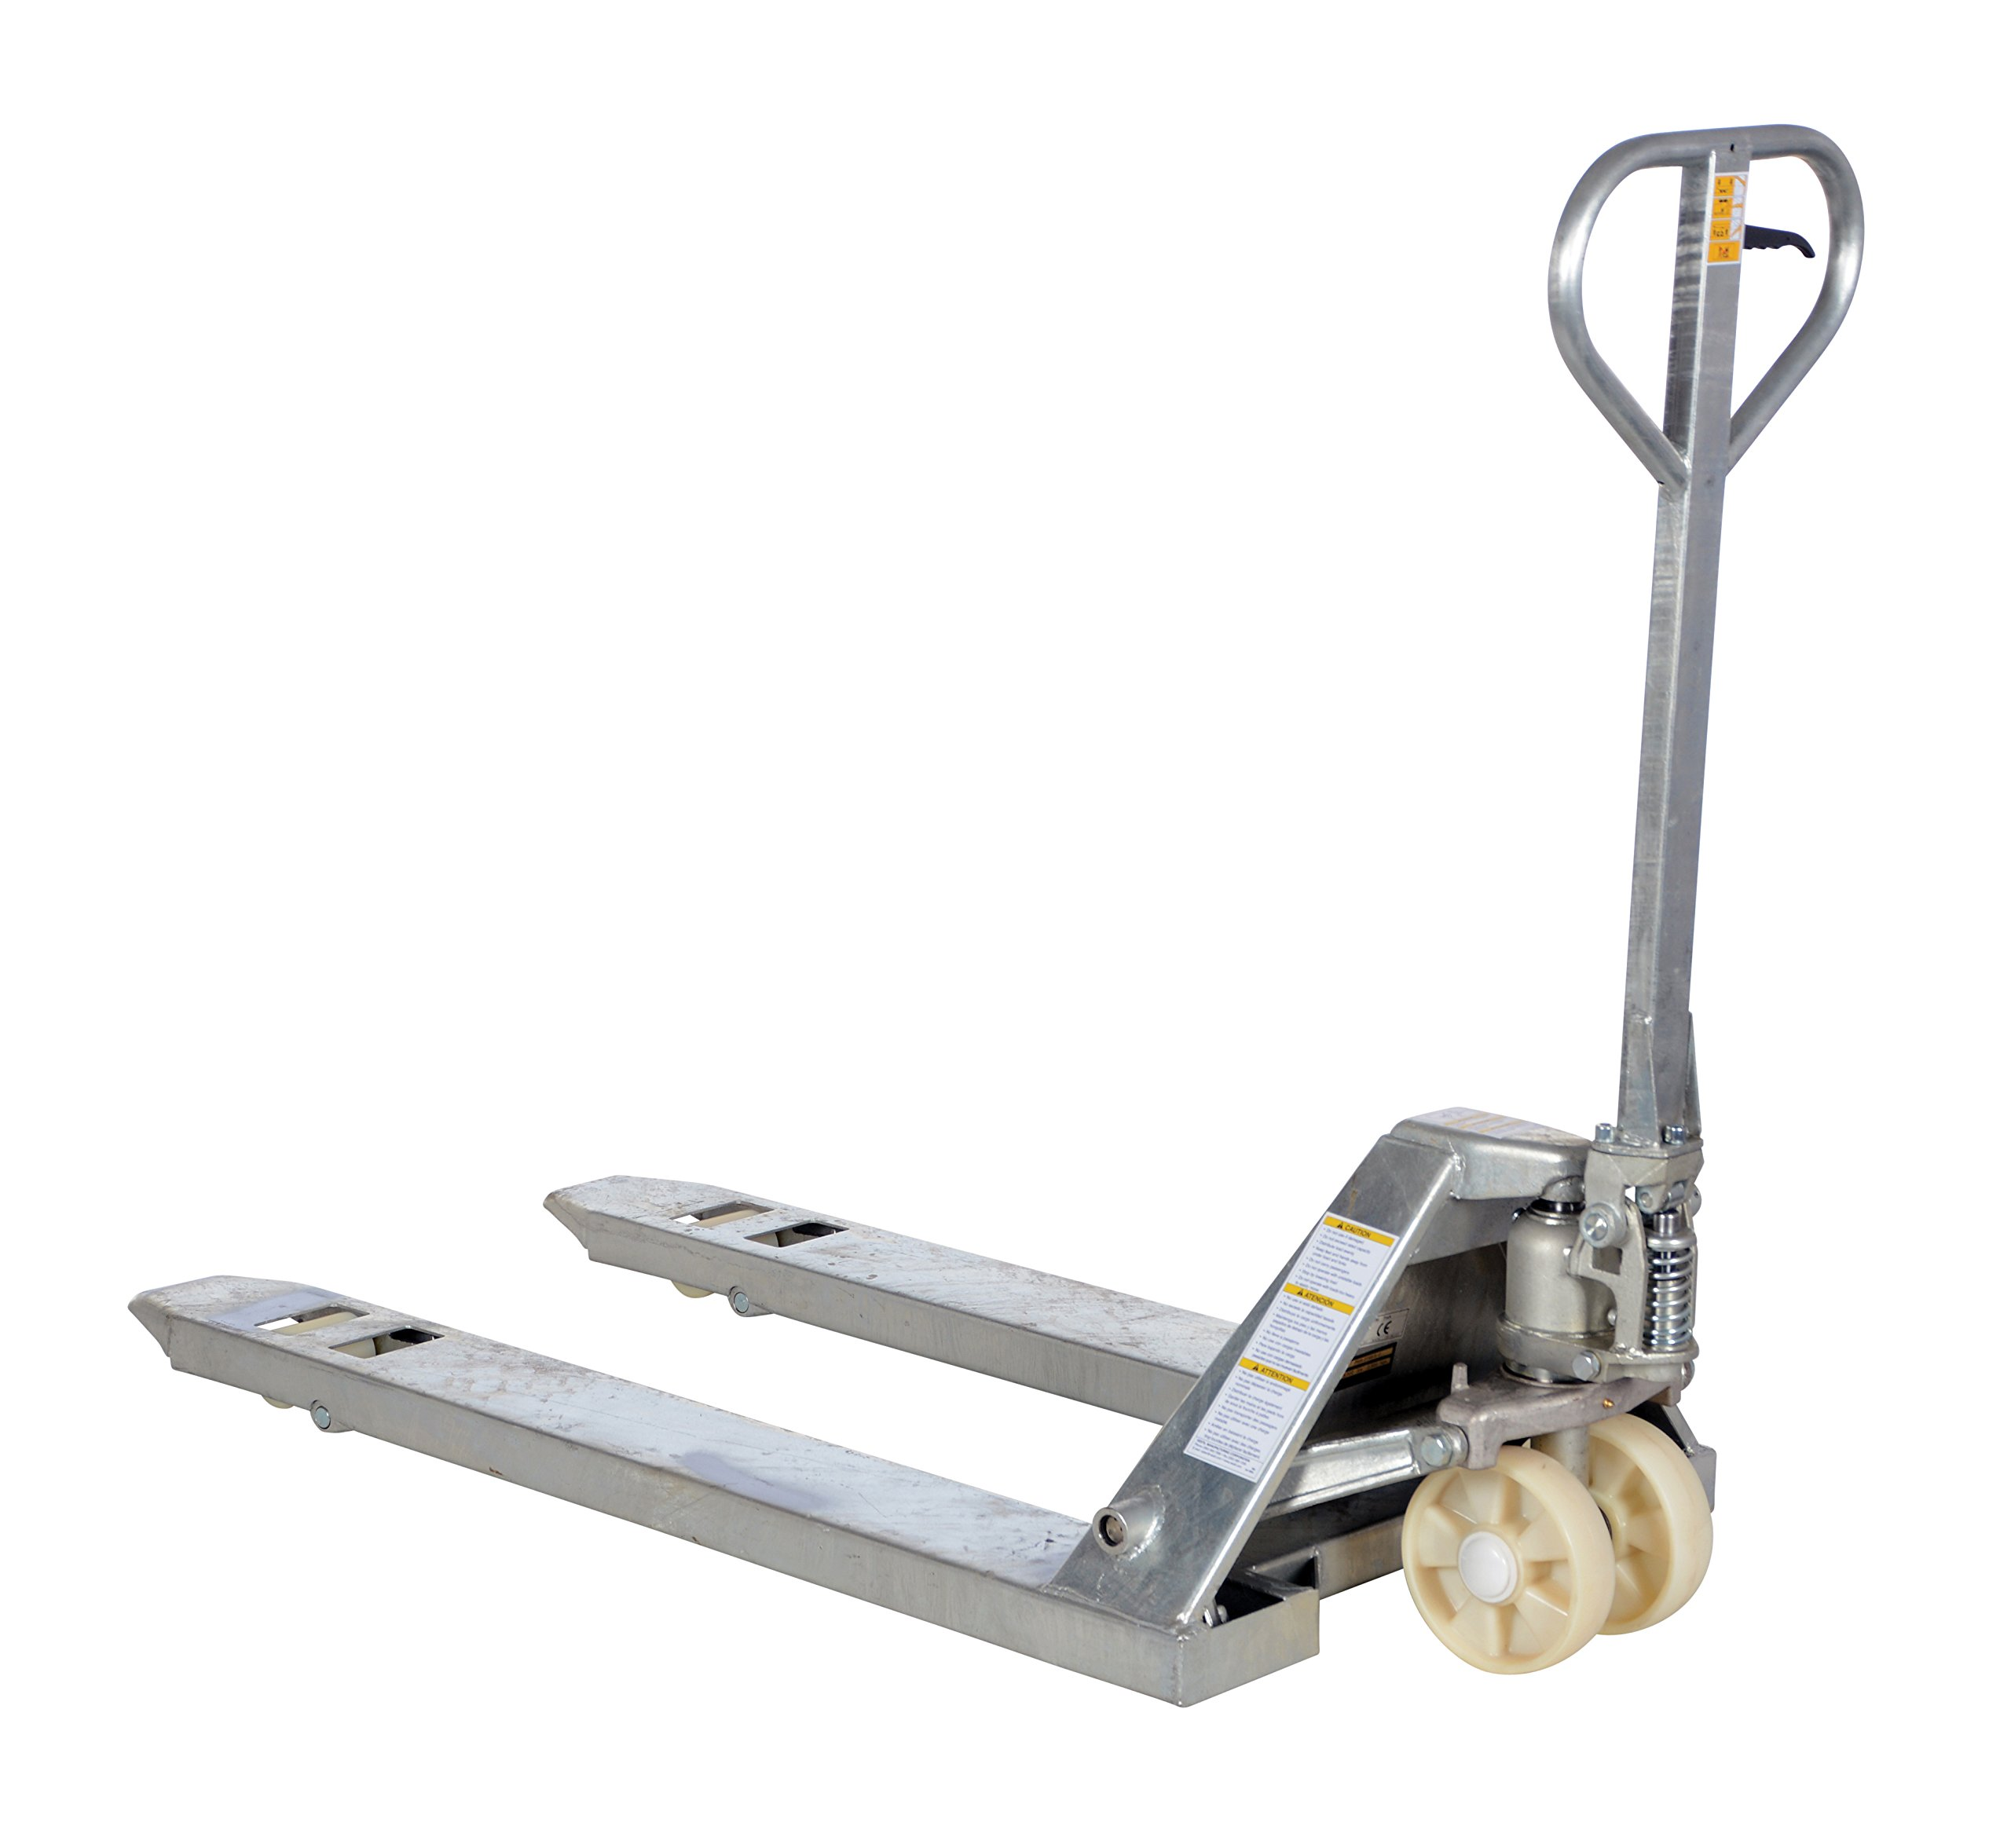 Vestil PM5-2748-S-G 304 Galvanized Steel Pallet Truck with Nylon Wheels, 5,500 lb. Capacity, 48'' Length x 27'' Width Fork